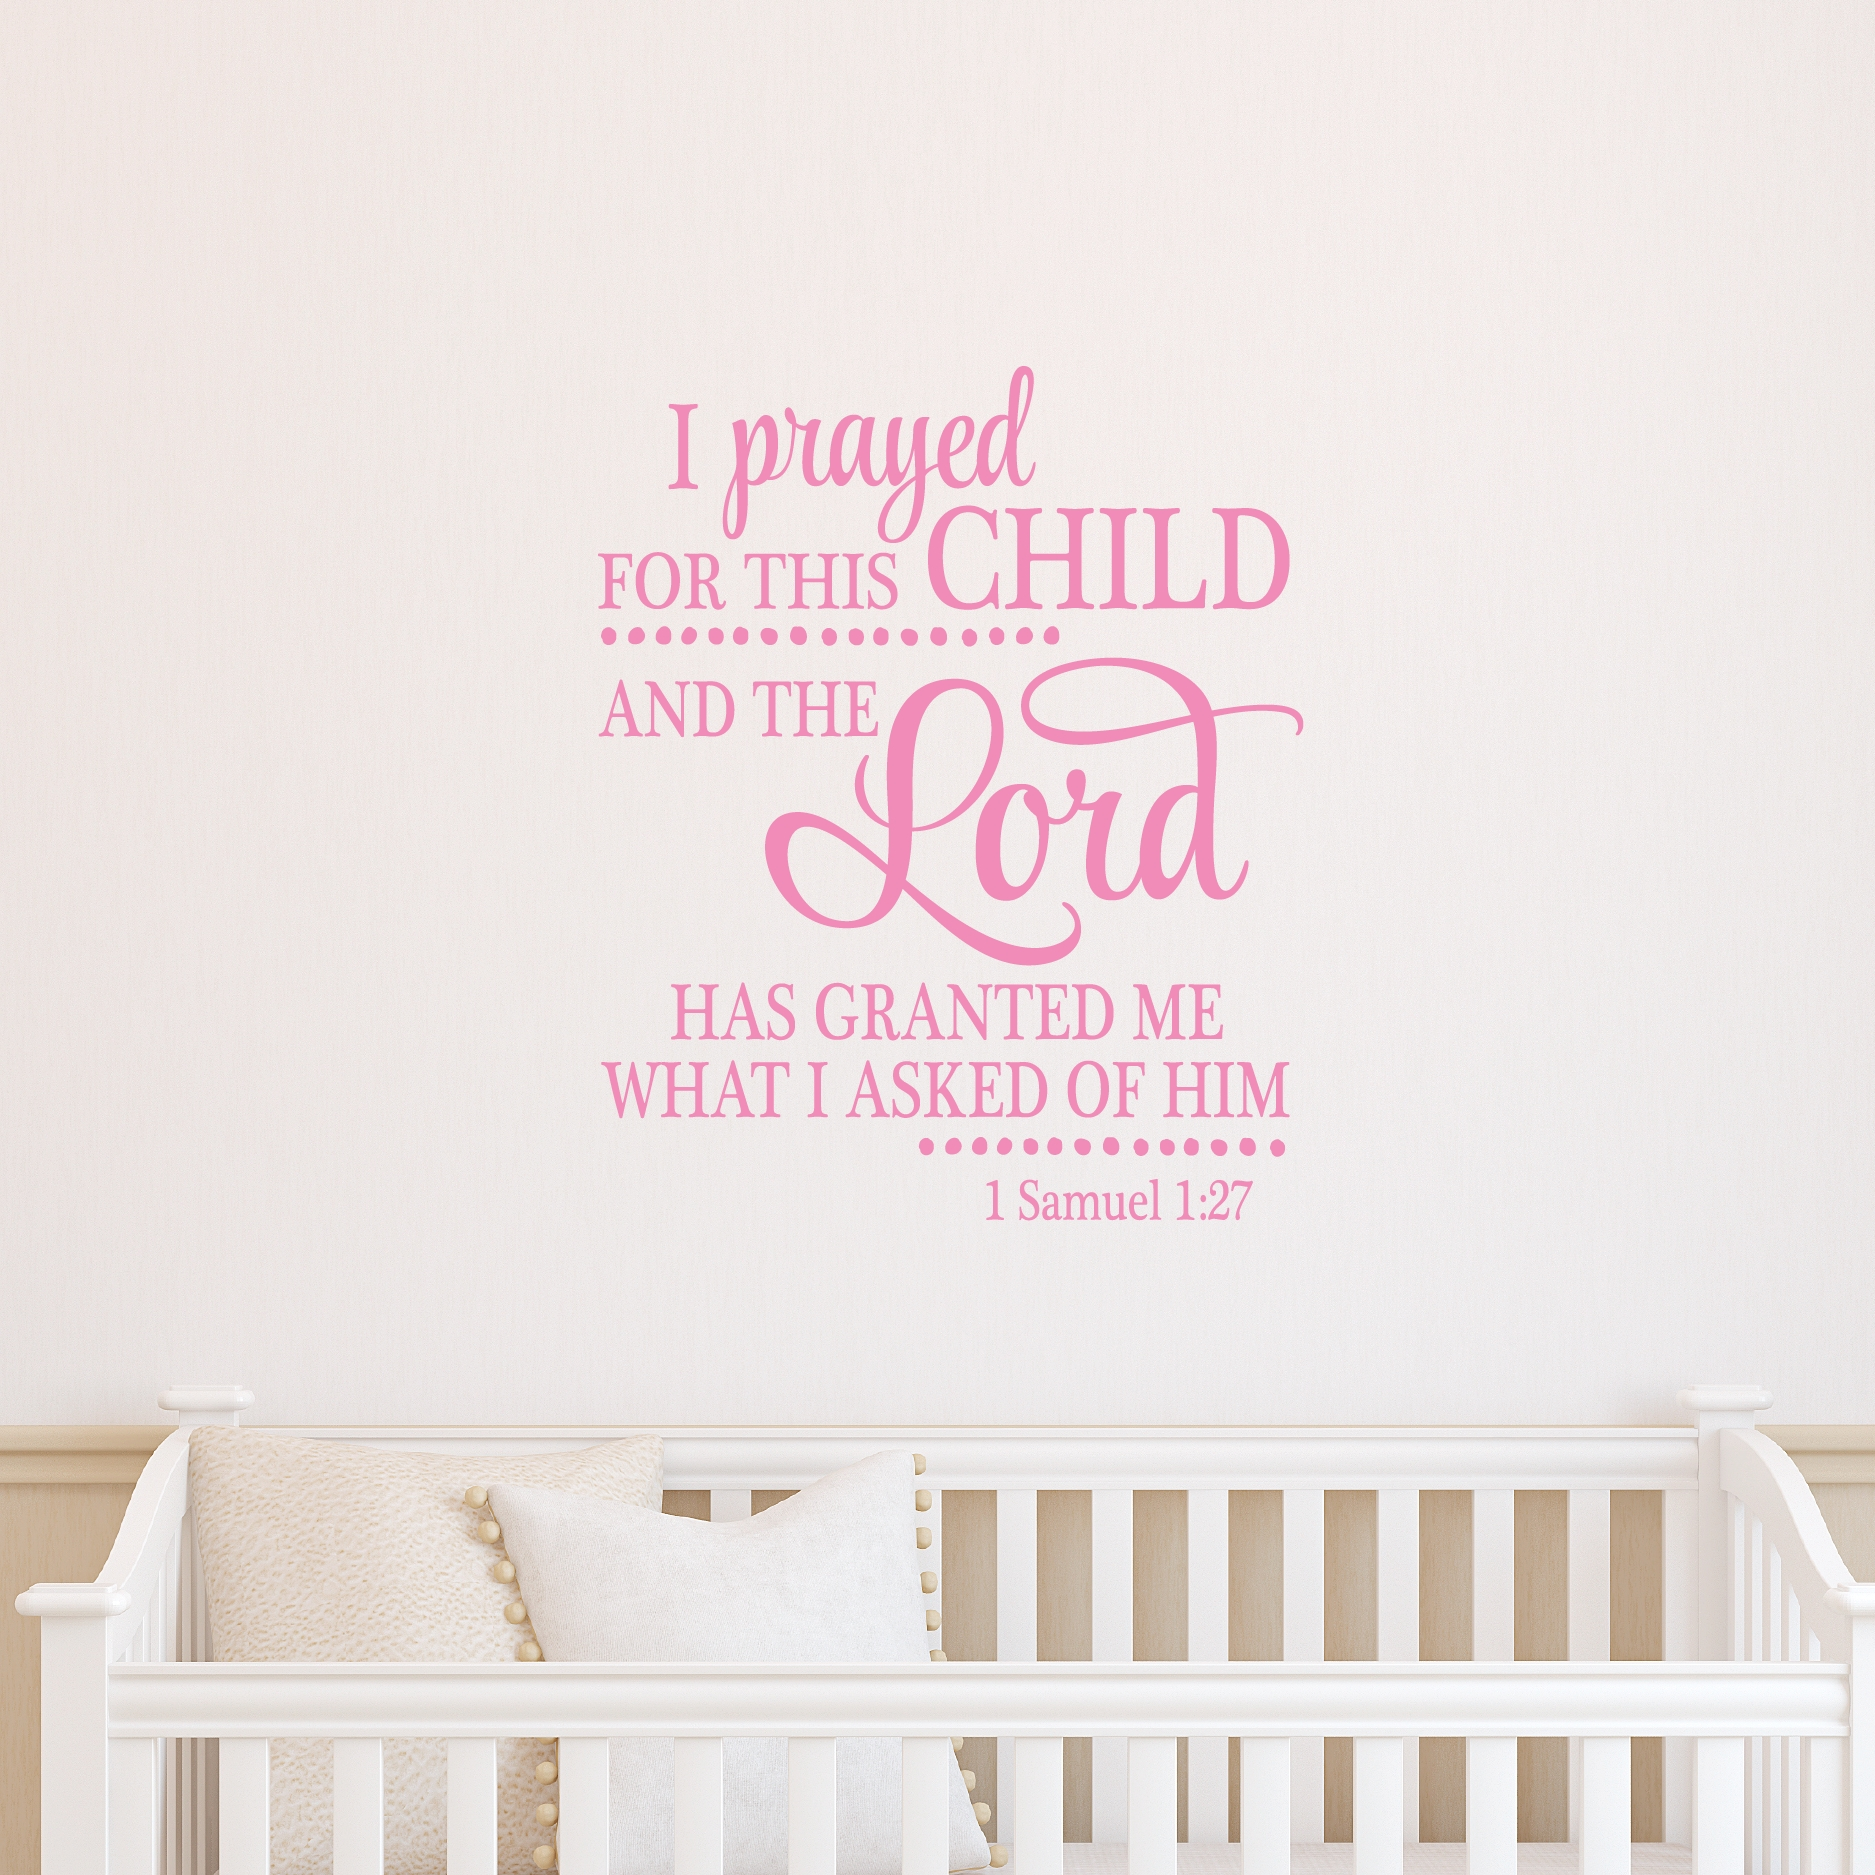 I Prayed For This Child Wall Quotes™ Decal | Wallquotes Intended For For This Child I Prayed Wall Art (Image 15 of 20)